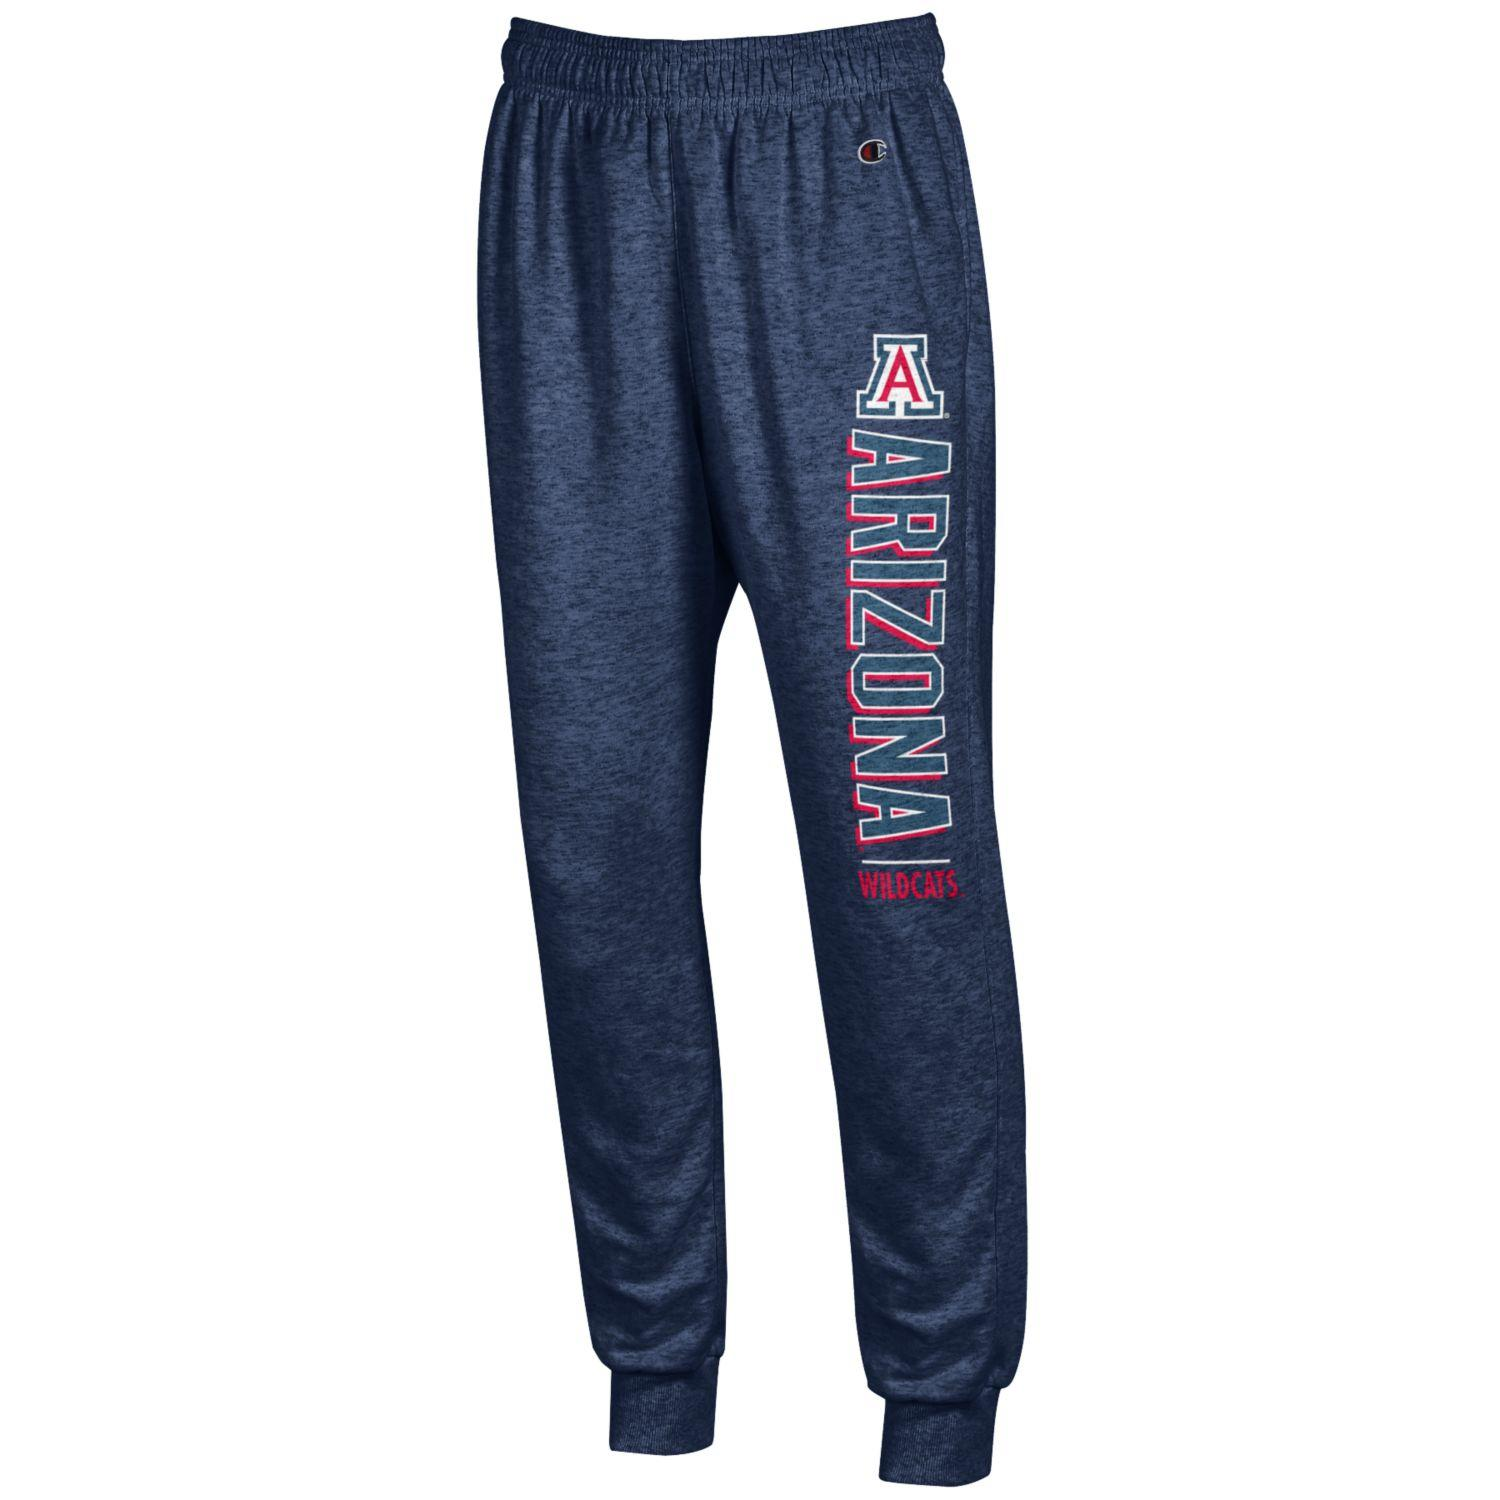 Image For Champion: Arizona Men's Eco Powerblend Fleece Jogger Pant